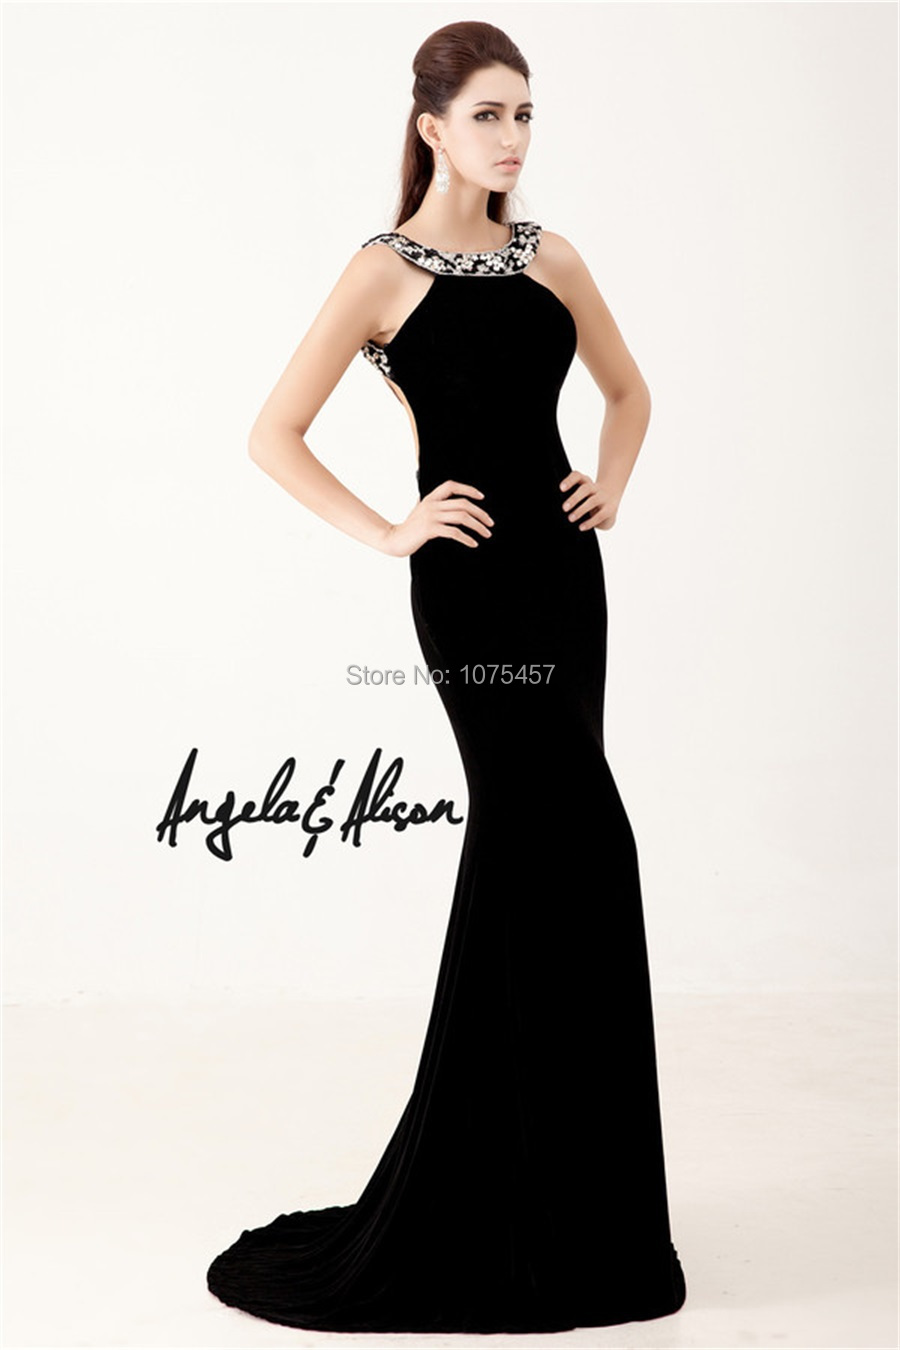 Free Shipping Sexy Backless Prom Dress With Crystals Halter Neck ...